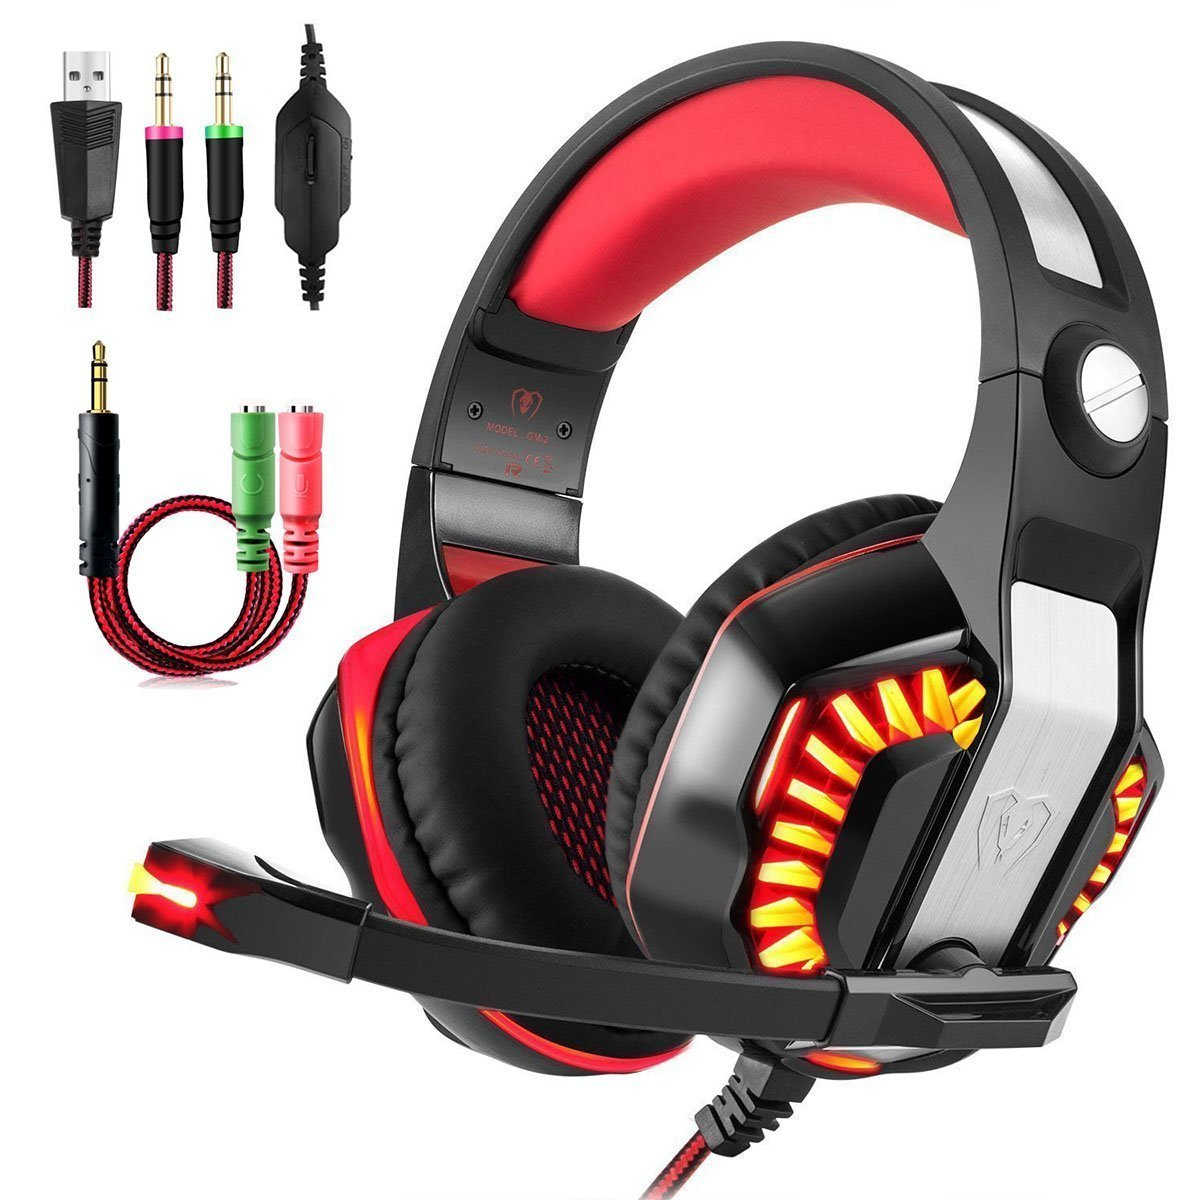 Beexcellent GM-2 Gaming Headset with Mic for New Xbox One PS4 PC, Xbox One Headset PS4 Headset, Over-Ear Gaming Headphones with LED Lights Volume Control Y Splitter for Laptop PC iPad Smartphones, Red by Beexcellent